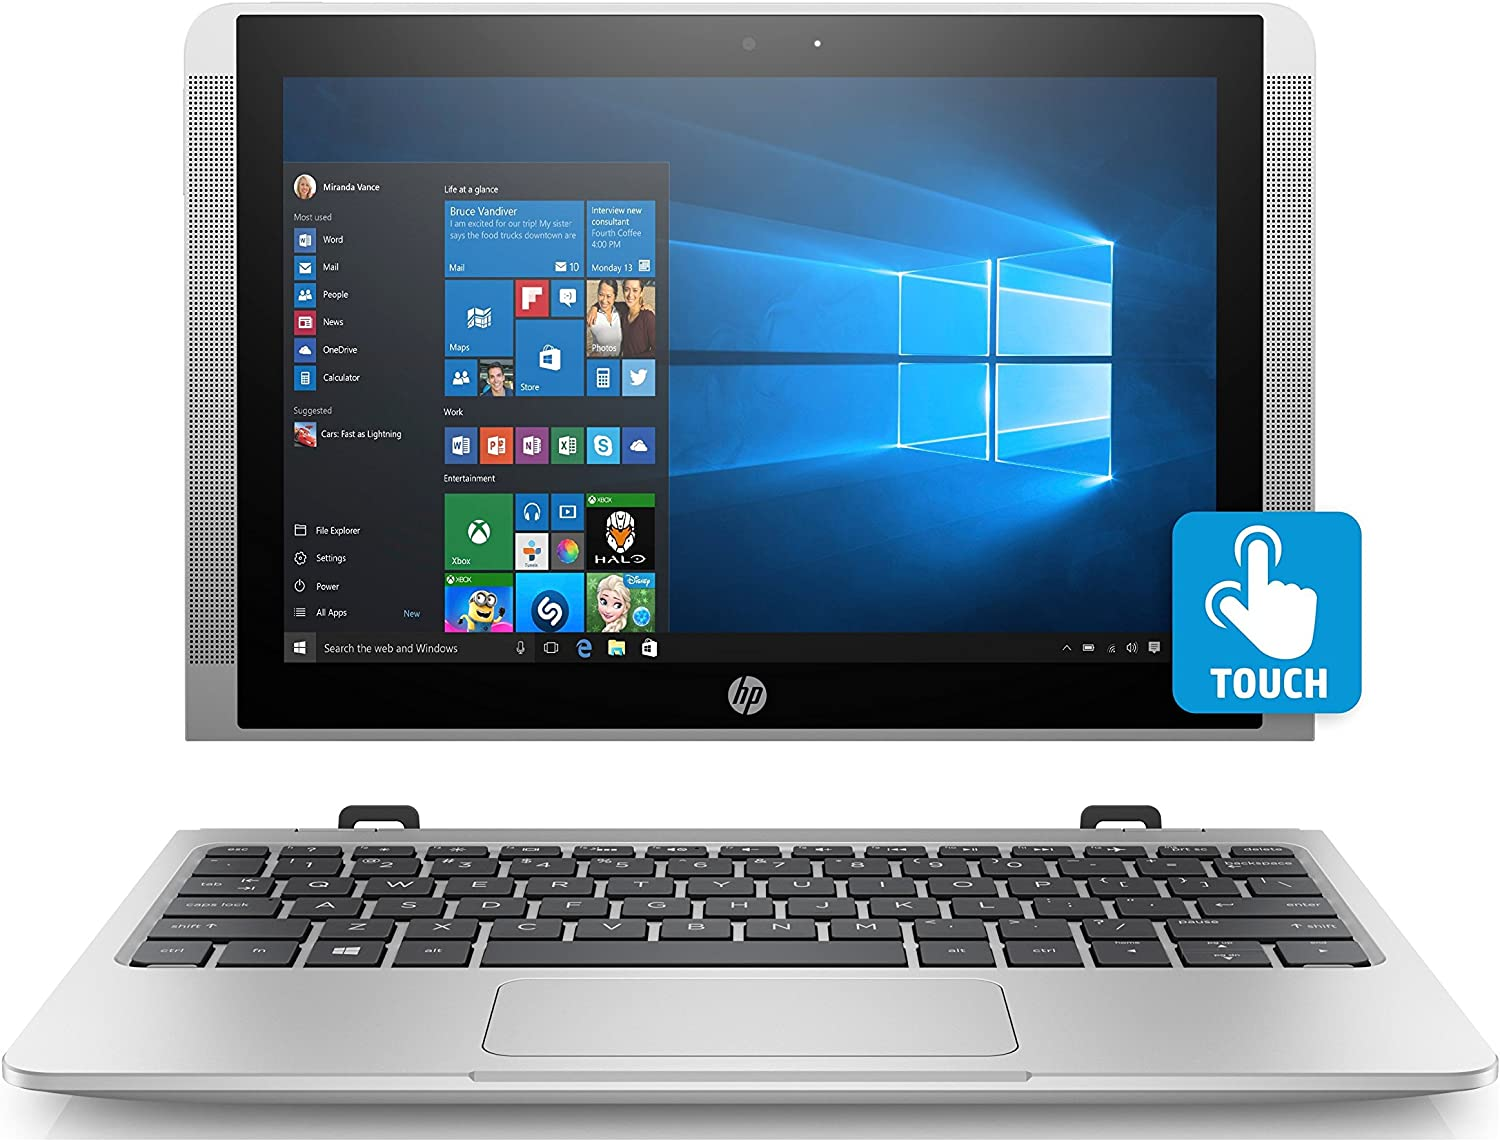 HP 10-P018WM Detachable Laptop, 10.1 IPS Touch Display, Windows 10 Home, Intel Atom X5-Z8350 Processor, 4GB Memory, 64GB eMMC Storage, 802.11 Wirless AC, Active Pen